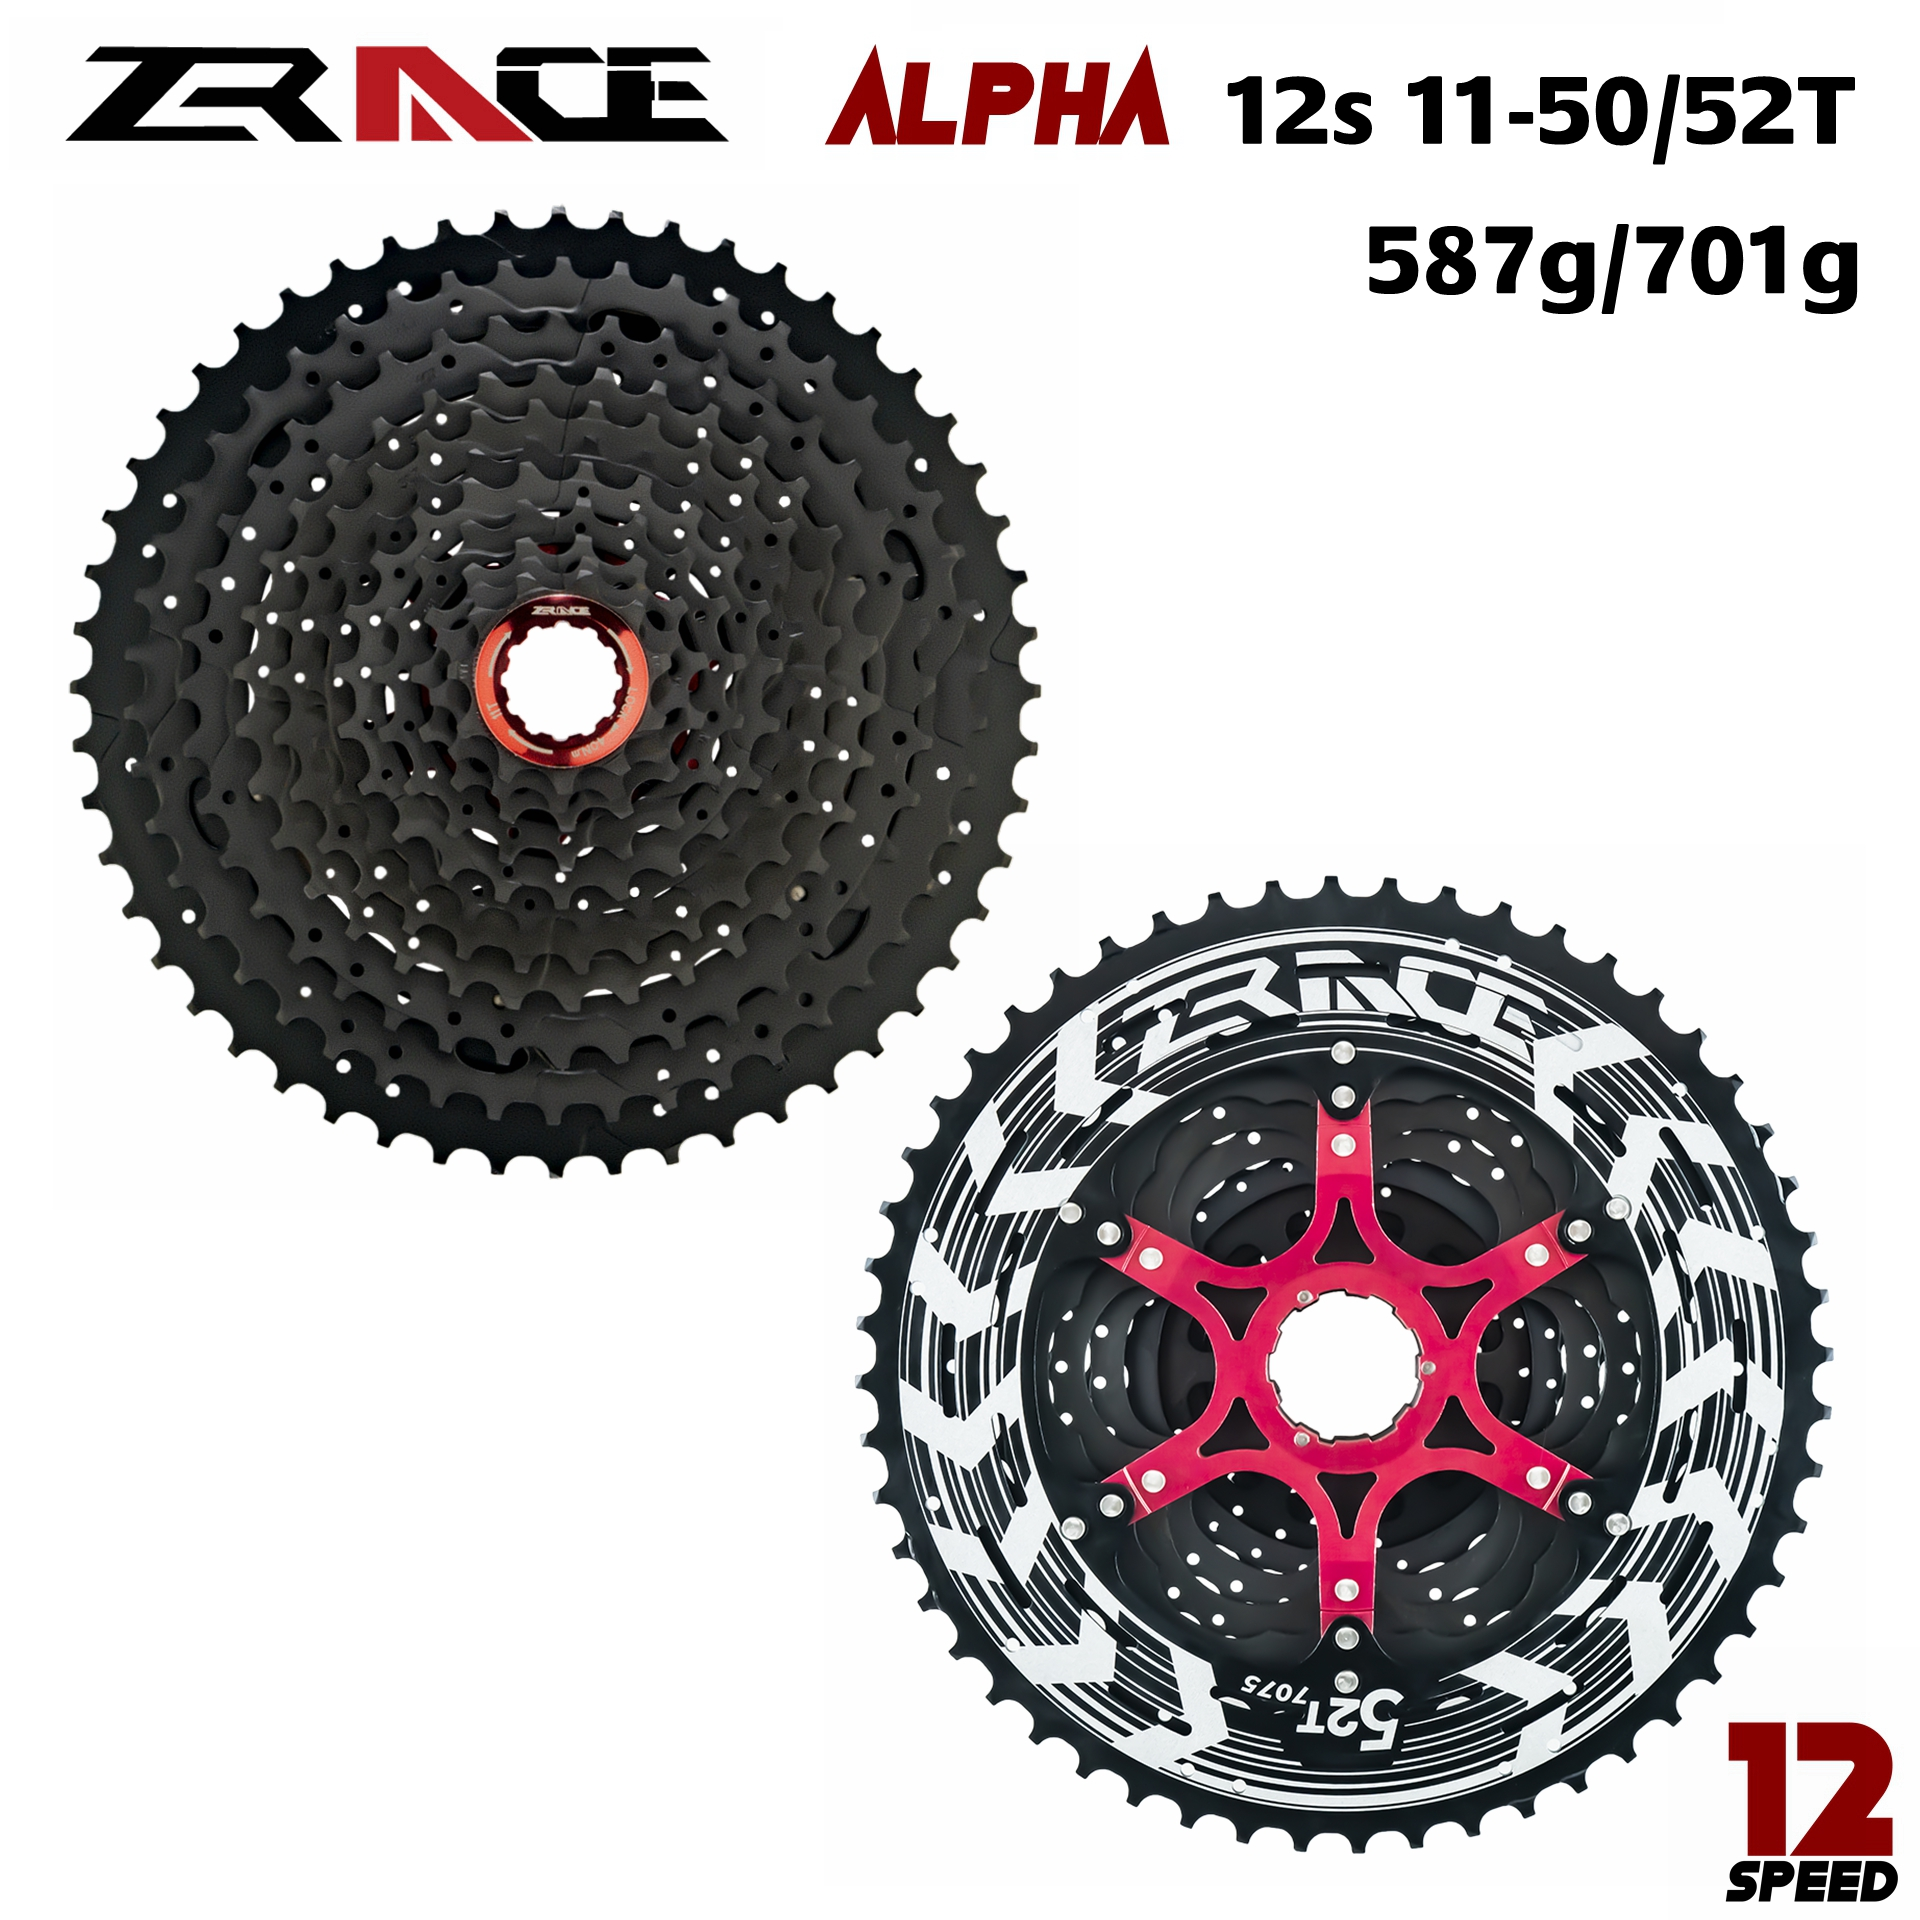 ZRACE Alpha 12s Lightweight Cassette 12 <font><b>Speed</b></font> MTB bike freewheel 11-50T / 11-52T - Black,compatible M9100 / XX1 X01 GX NX Eagle image